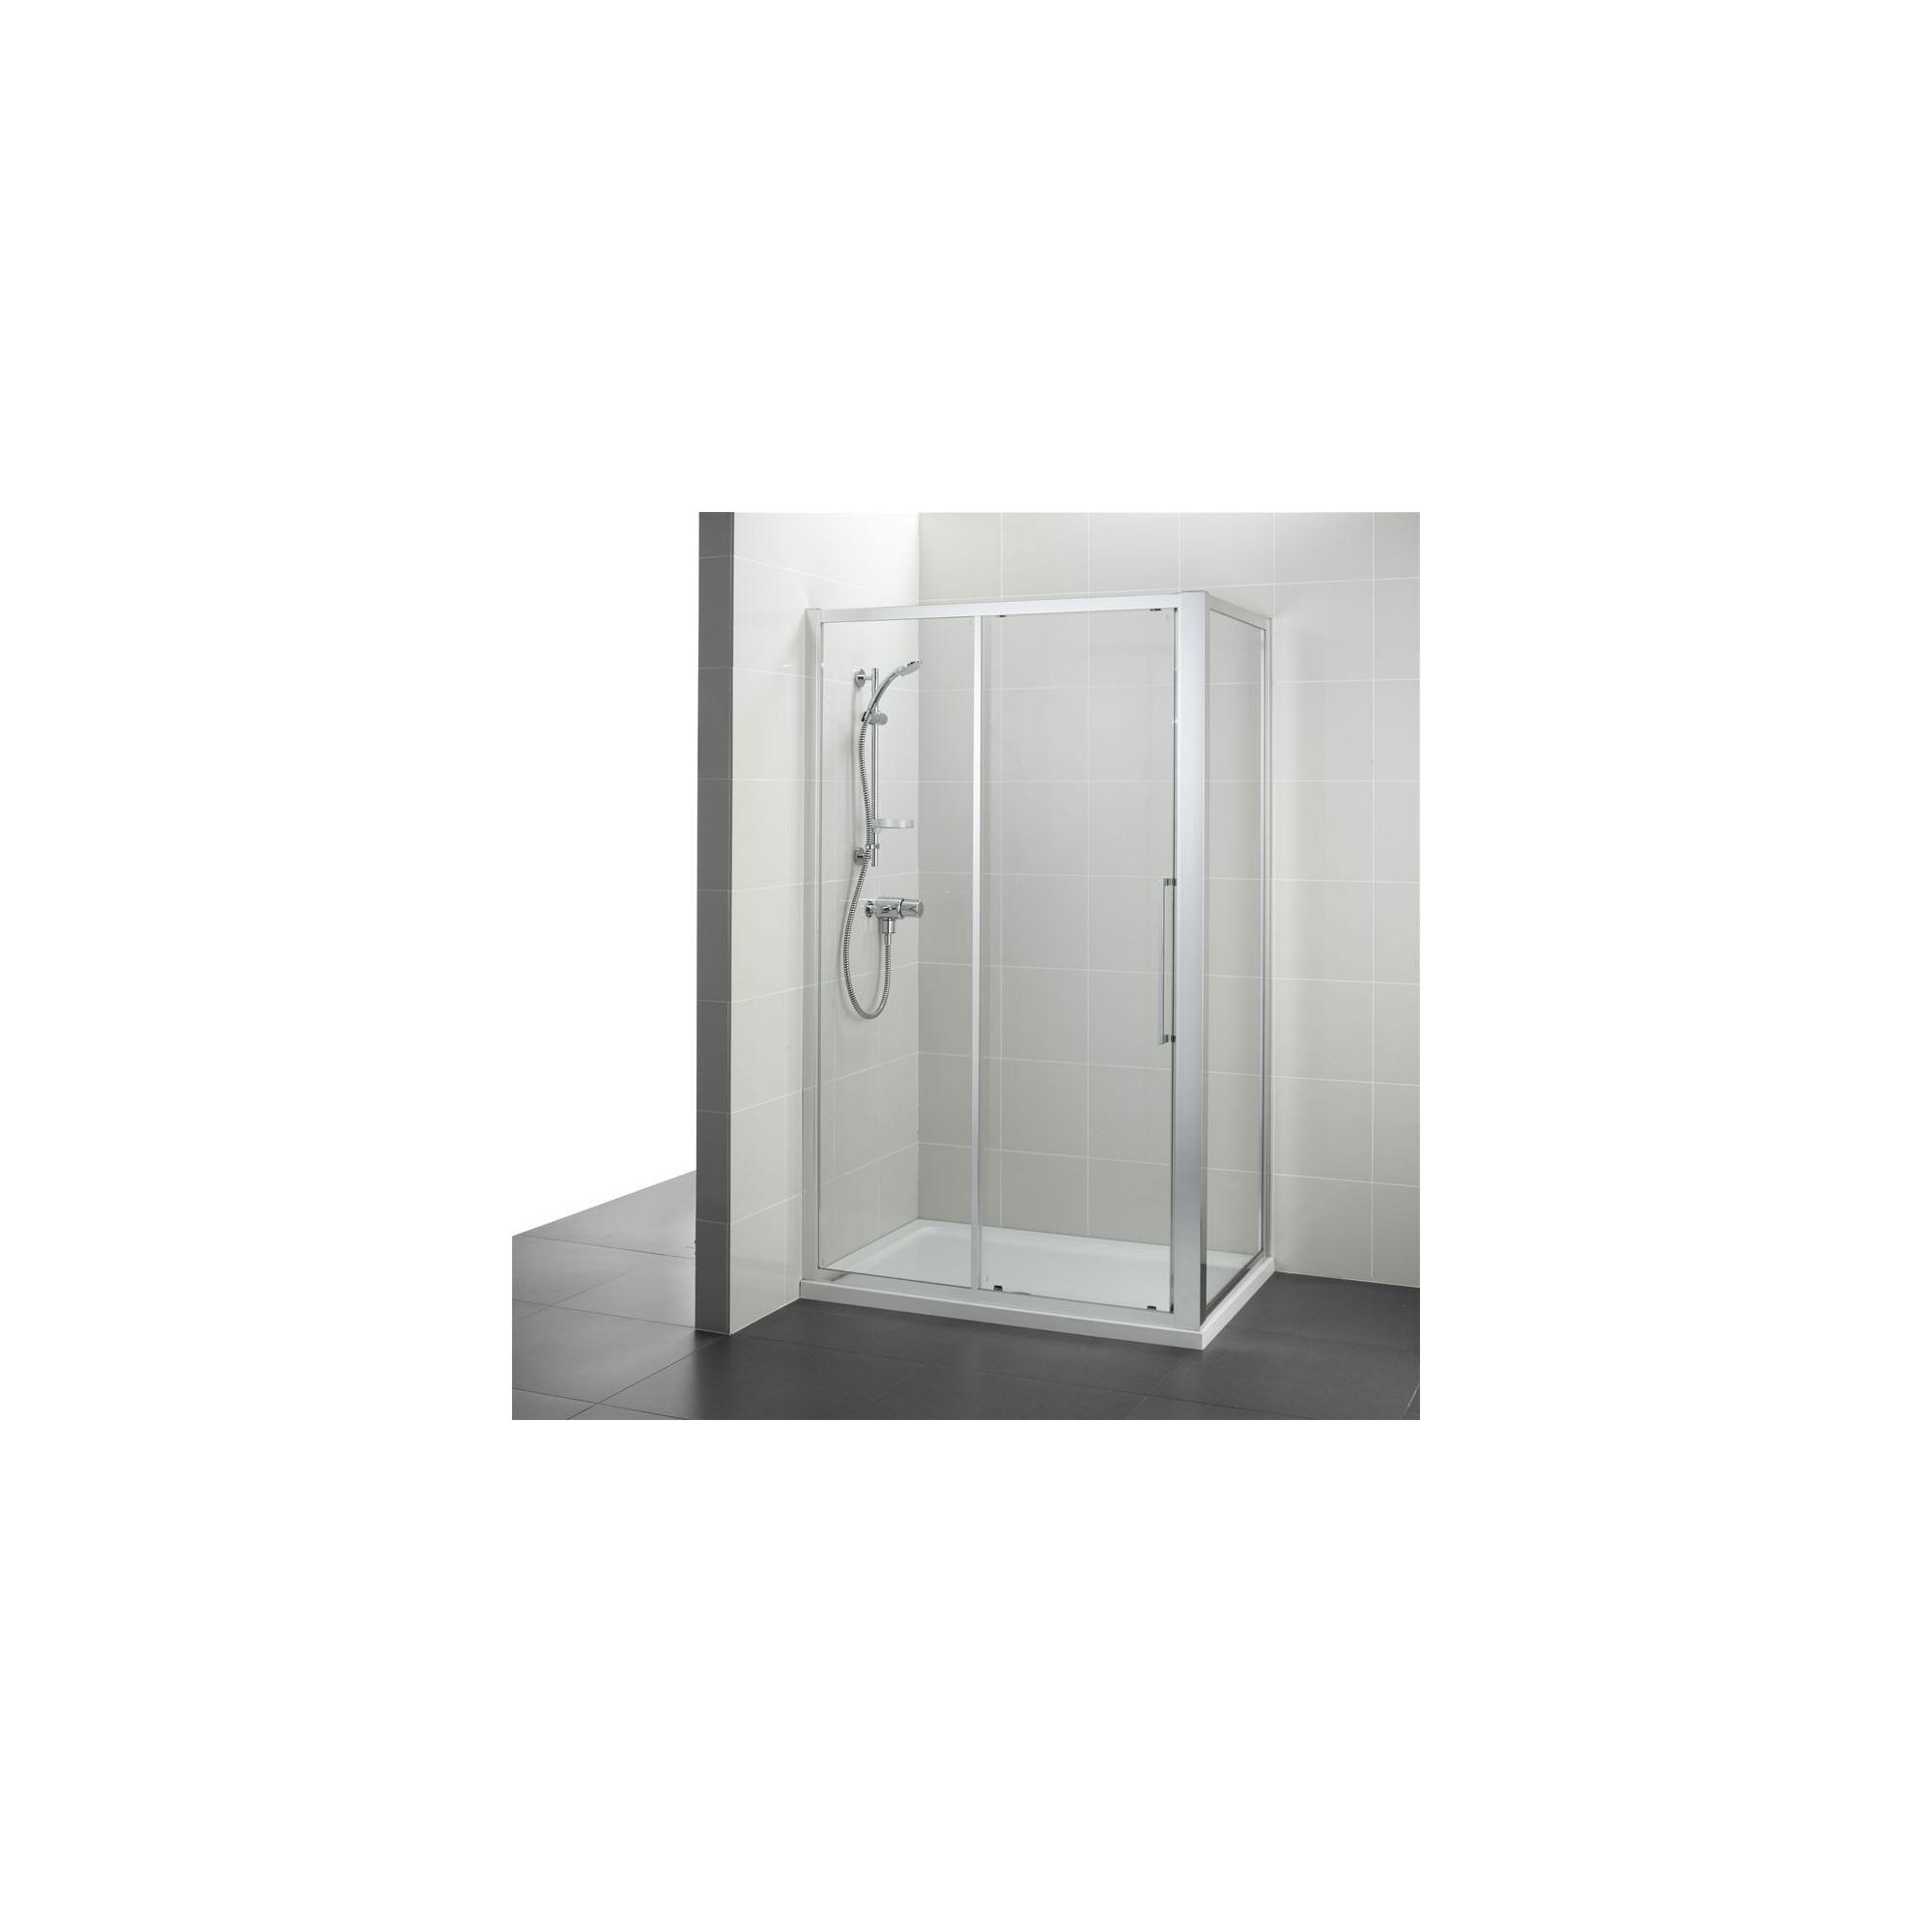 Ideal Standard Kubo Pivot Door Shower Enclosure, 900mm x 800mm, Bright Silver Frame, Low Profile Tray at Tesco Direct